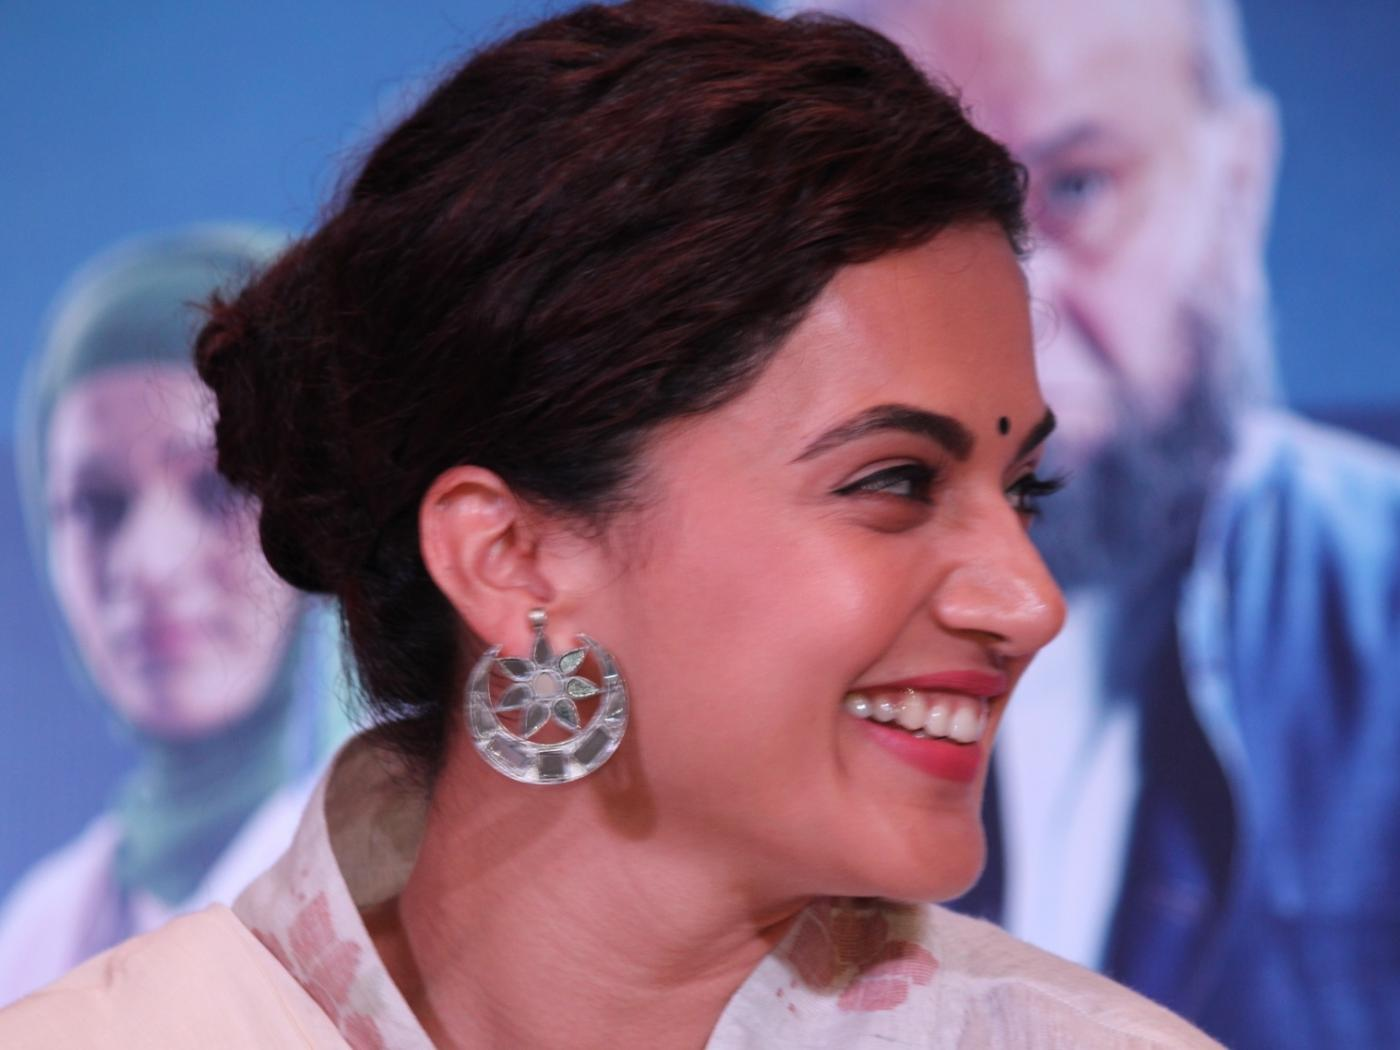 """New Delhi: Actress Taapsee Pannu during a programme organised to promote her upcoming film """"Mulk"""" in New Delhi on July 23, 2018. (Photo: Amlan Paliwal/IANS) by ."""